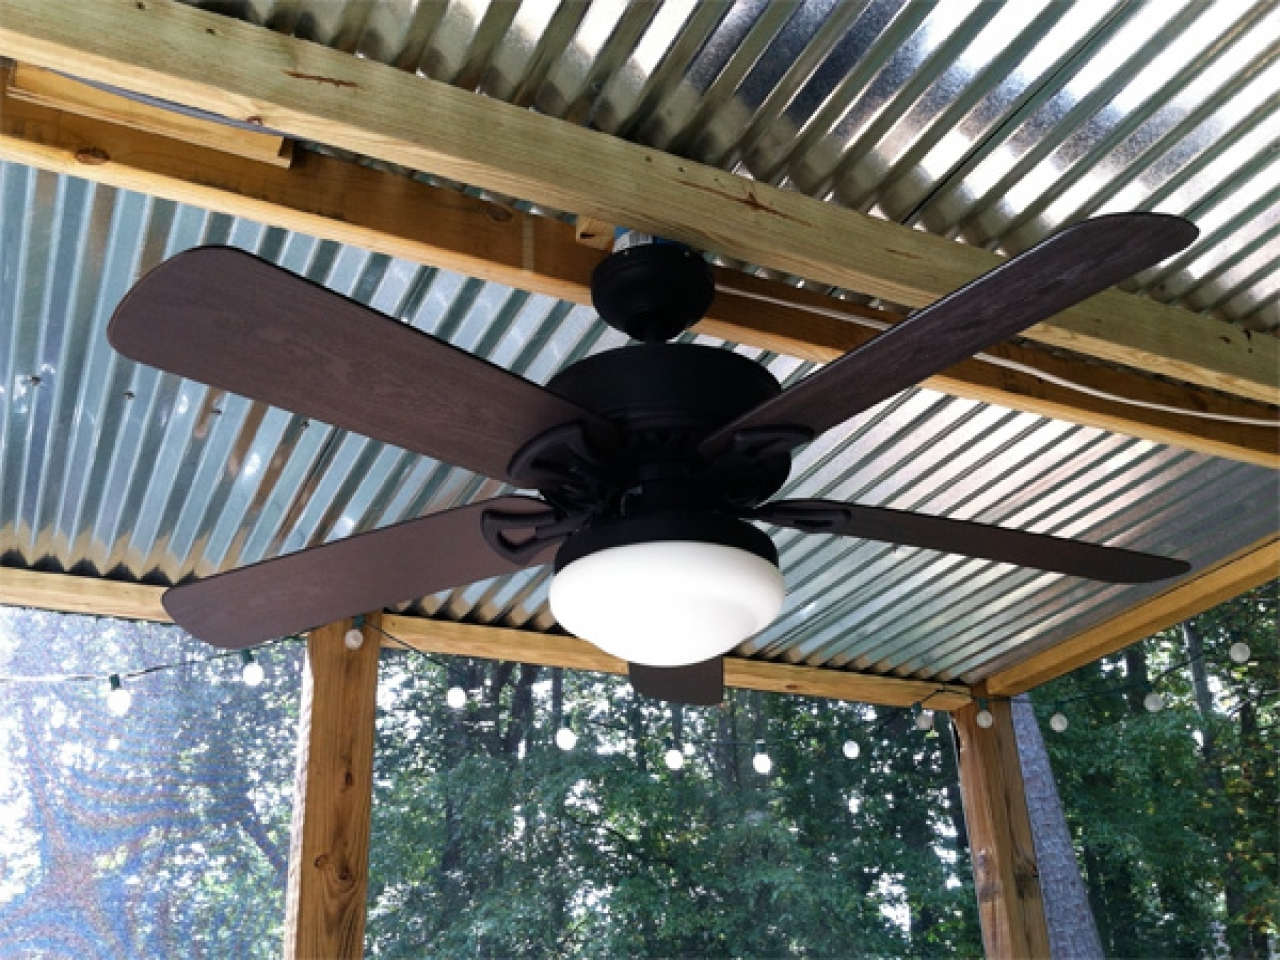 Outdoor Patio Ceiling Fans With Lights For Most Up To Date Nice Outdoor Patio Ceiling Fans Patio Ceiling Fans With Lights (View 11 of 20)